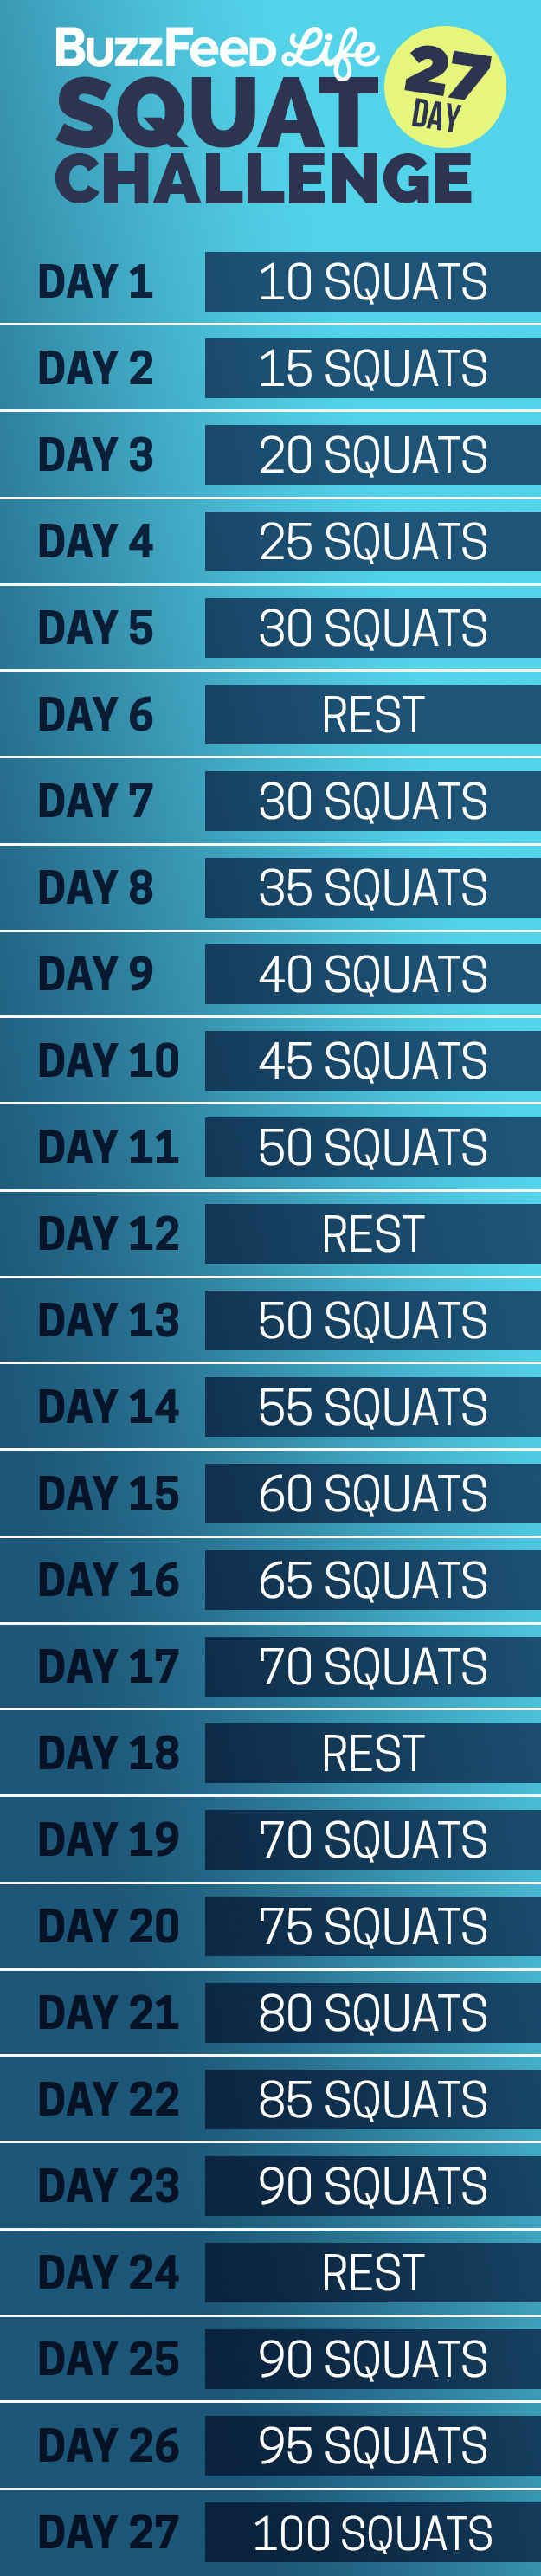 Here's your daily squat schedule: